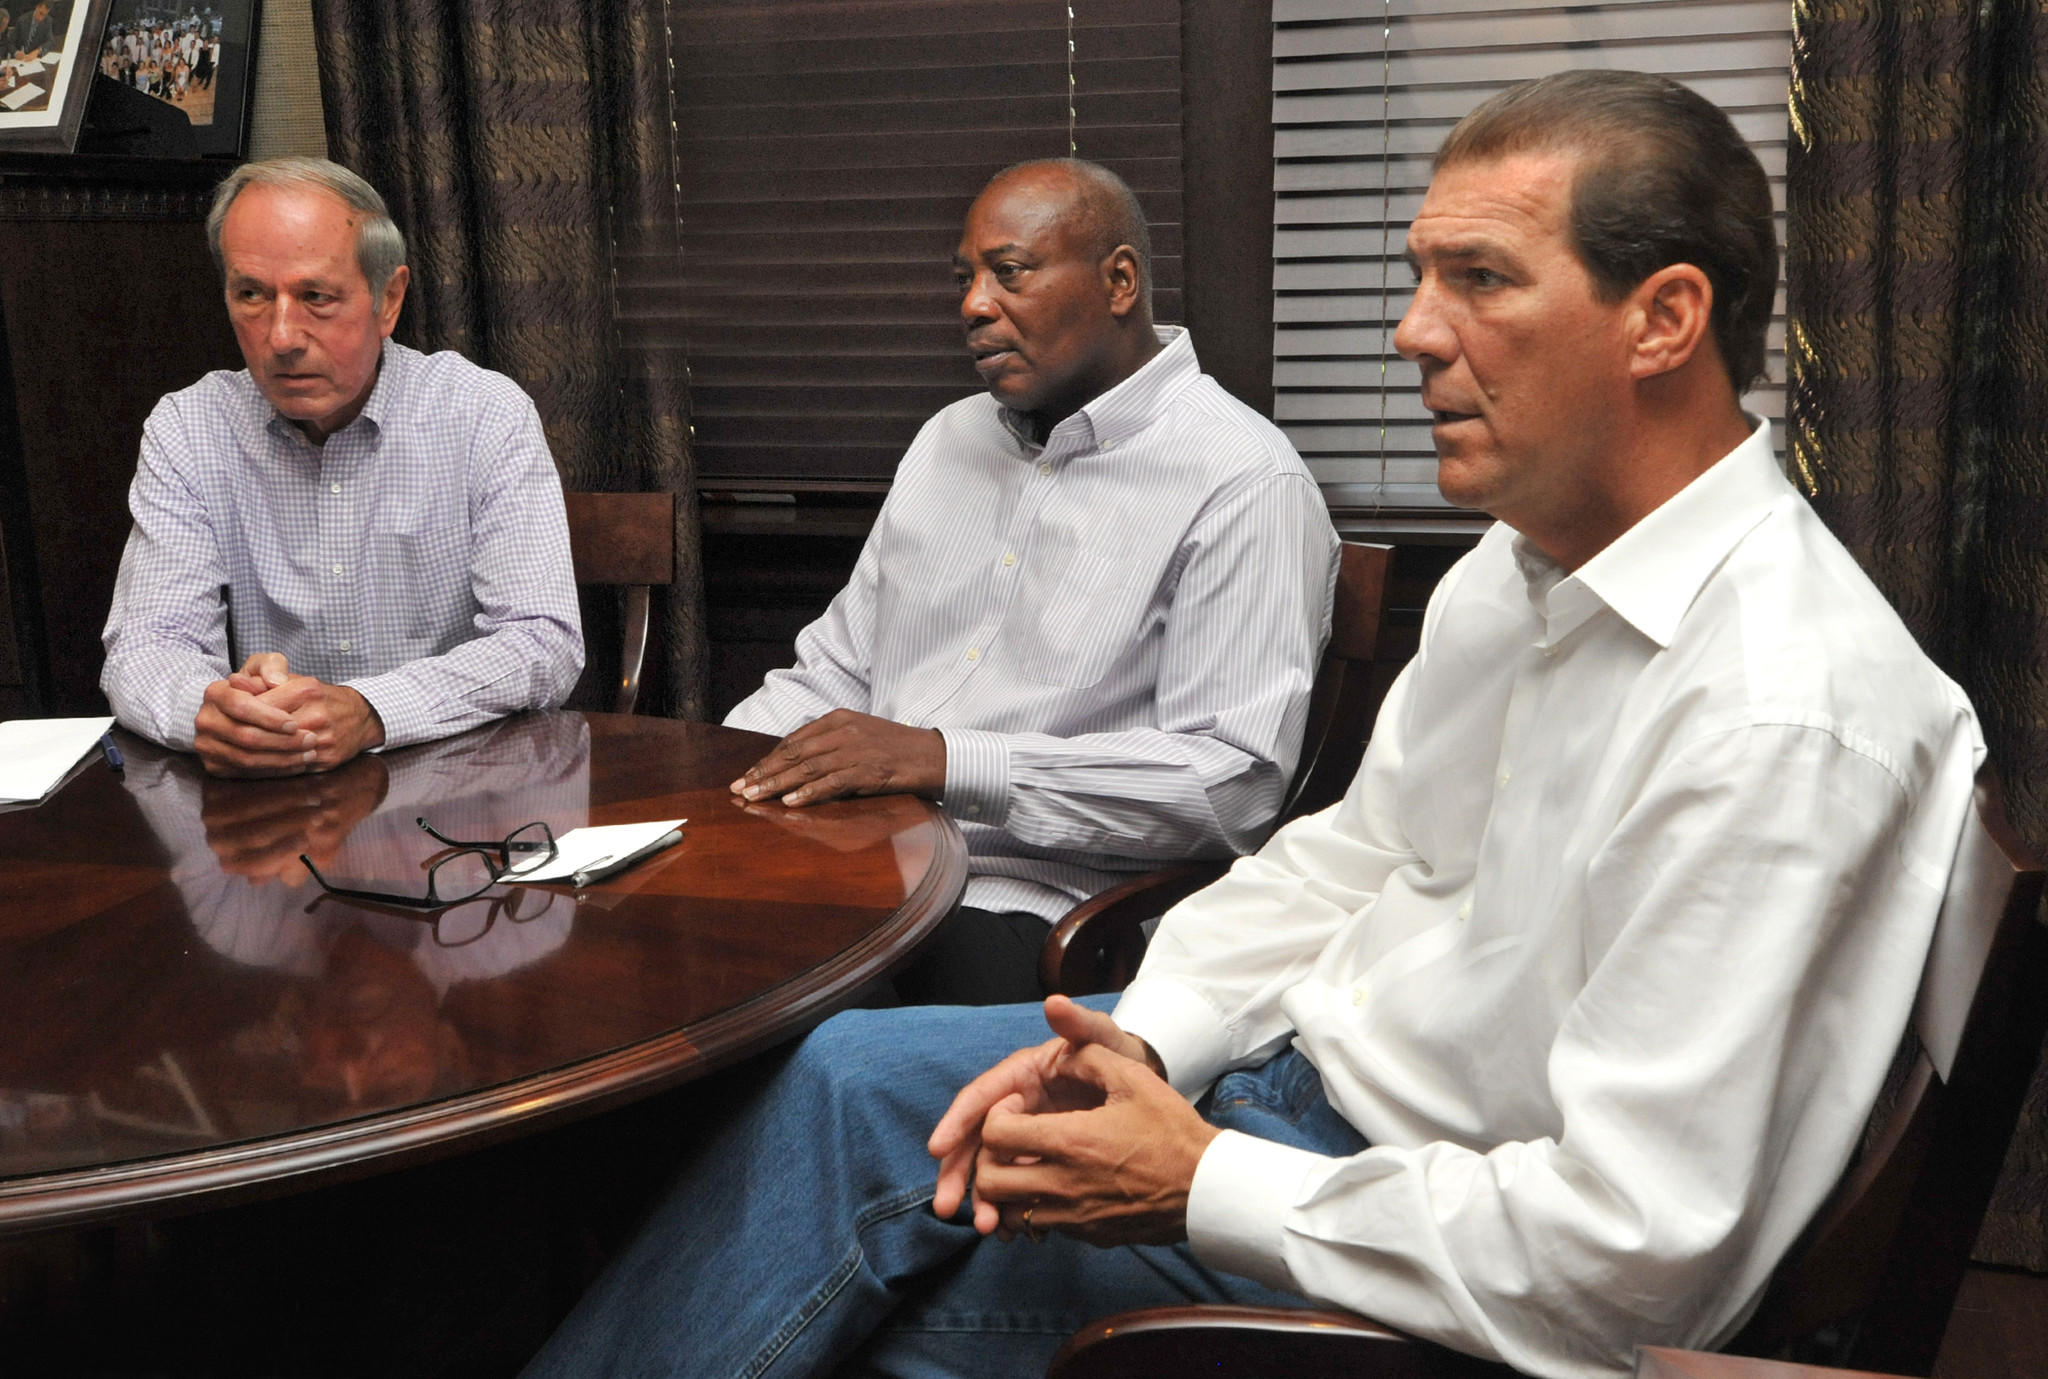 Ravens team executives from the left, president Dick Cass, general manager Ozzie Newsome and owner Steve Bisciotti sit down with The Baltimore Sun Wednesday at the Ravens' complex.